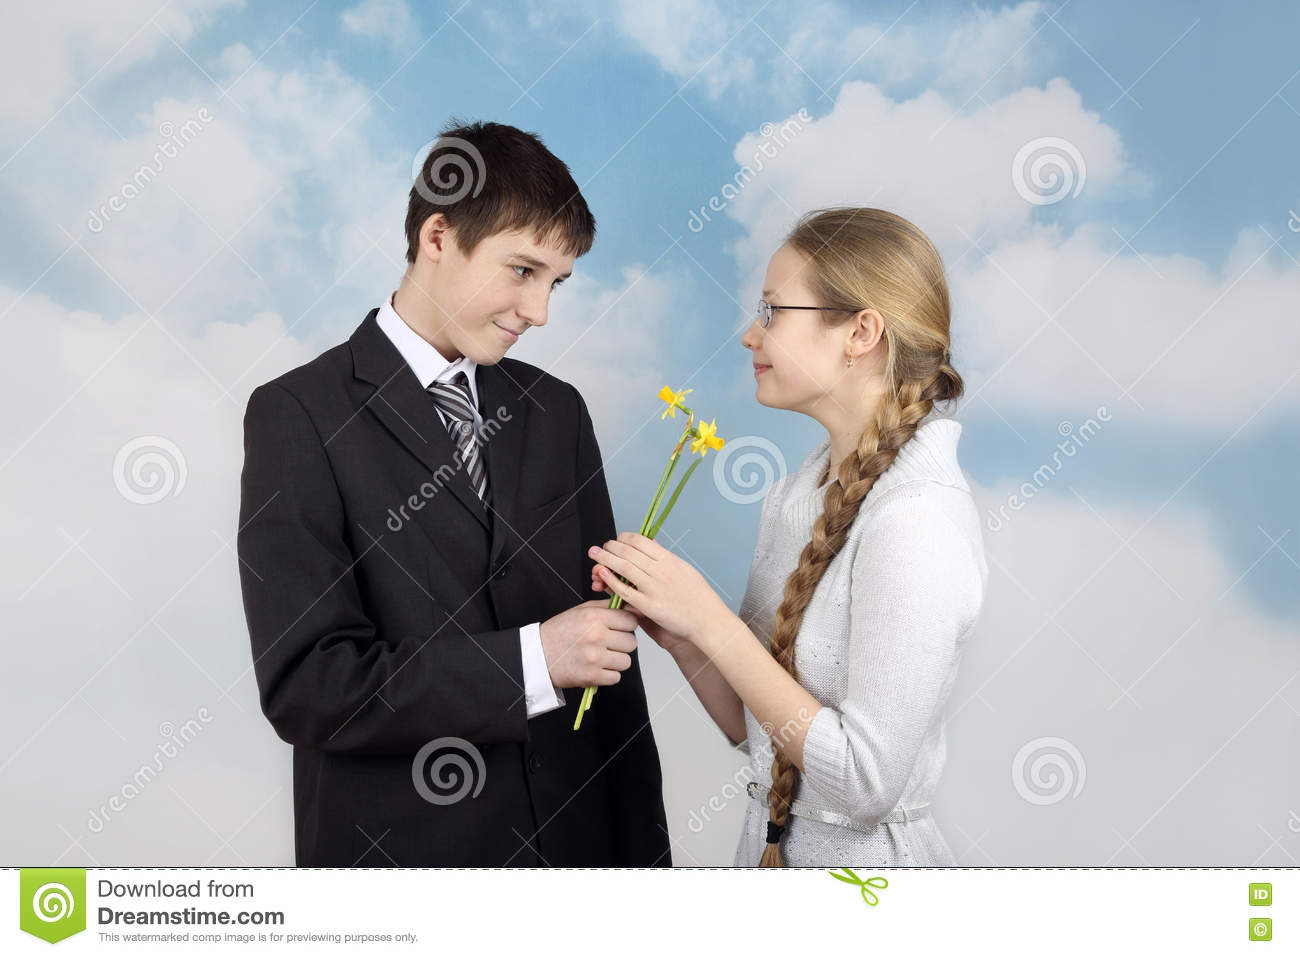 Boy gives flowers to girlfriend stock image image of pretty download boy gives flowers to girlfriend stock image image of pretty attractive 78757765 mightylinksfo